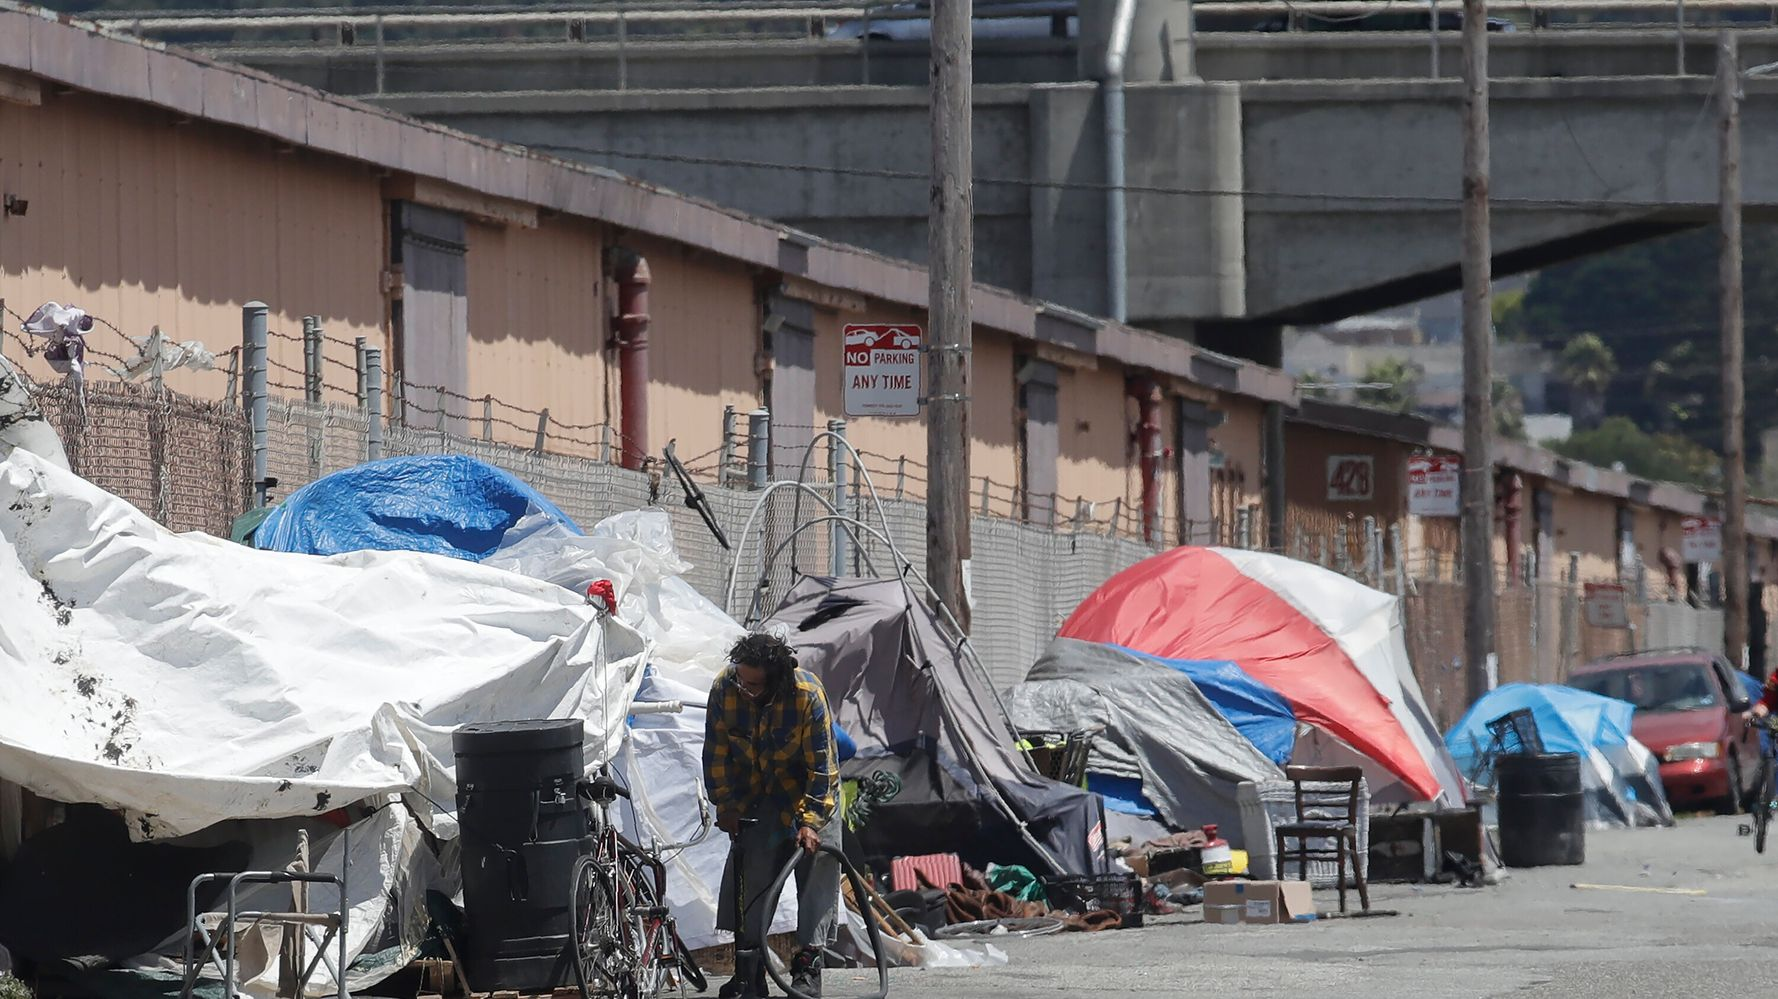 America's Homeless Crisis Is Inspiring New Acts Of Cruelty